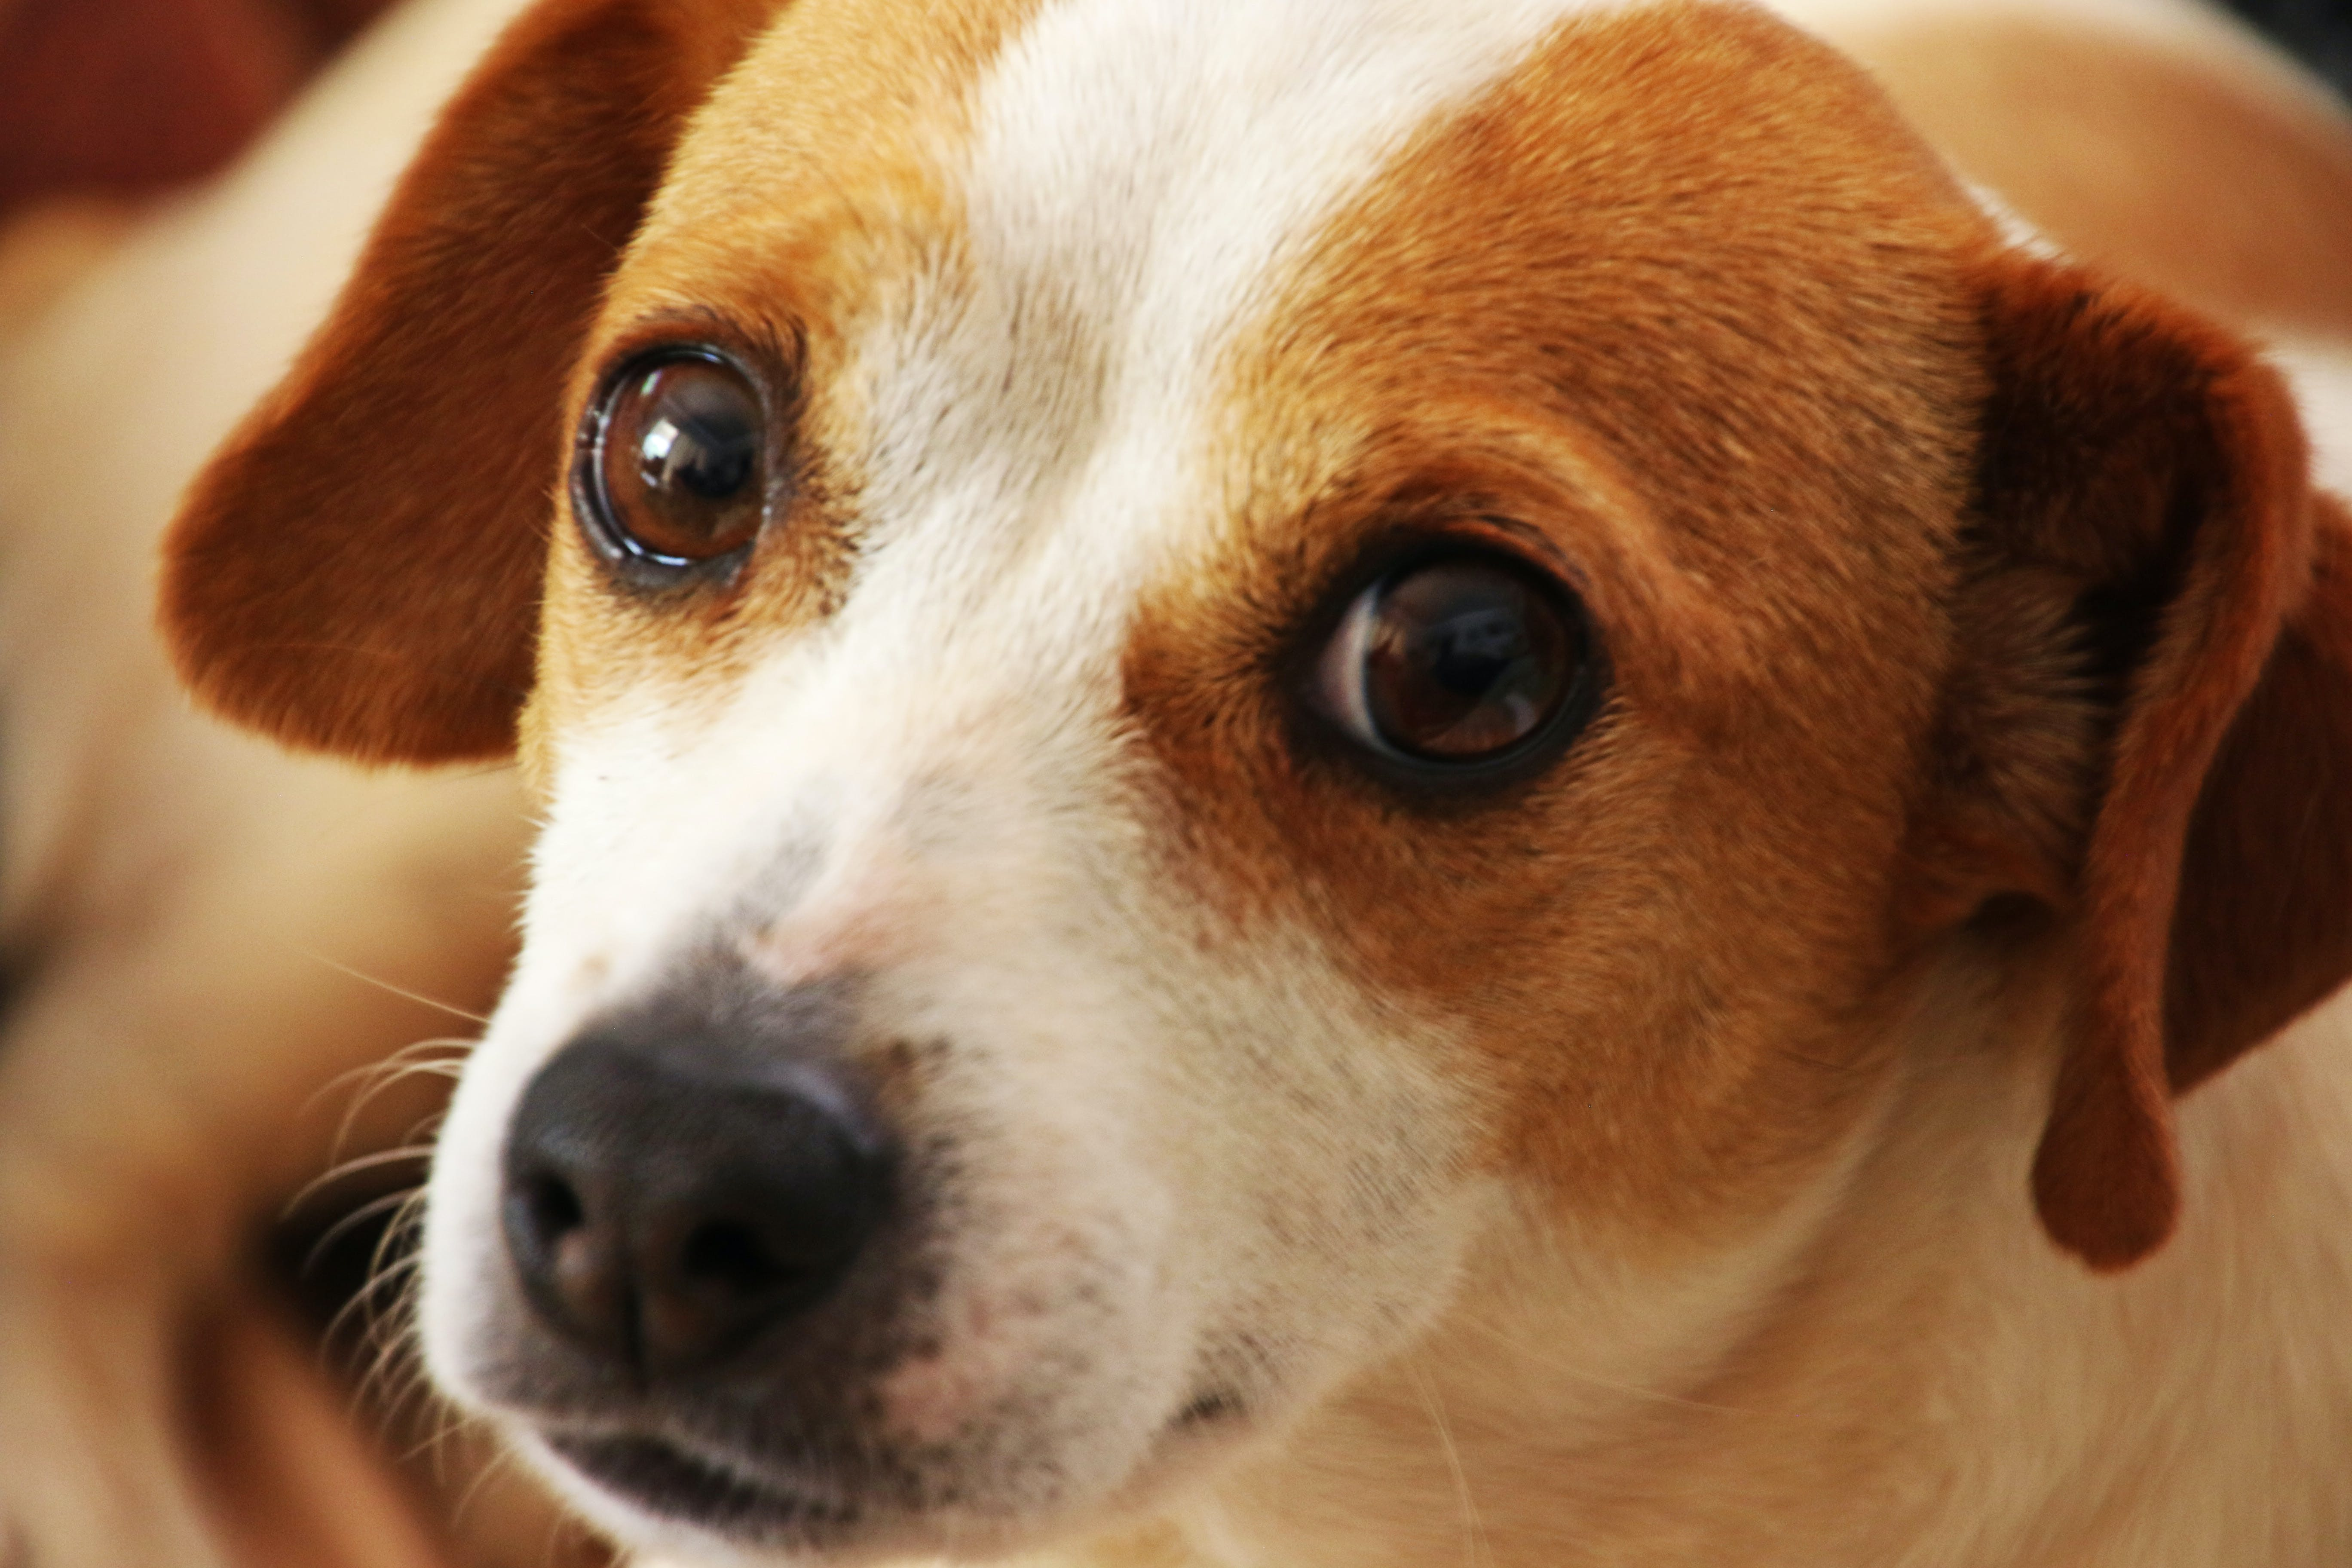 Close Up Photo of Short-coated Brown and White Dog